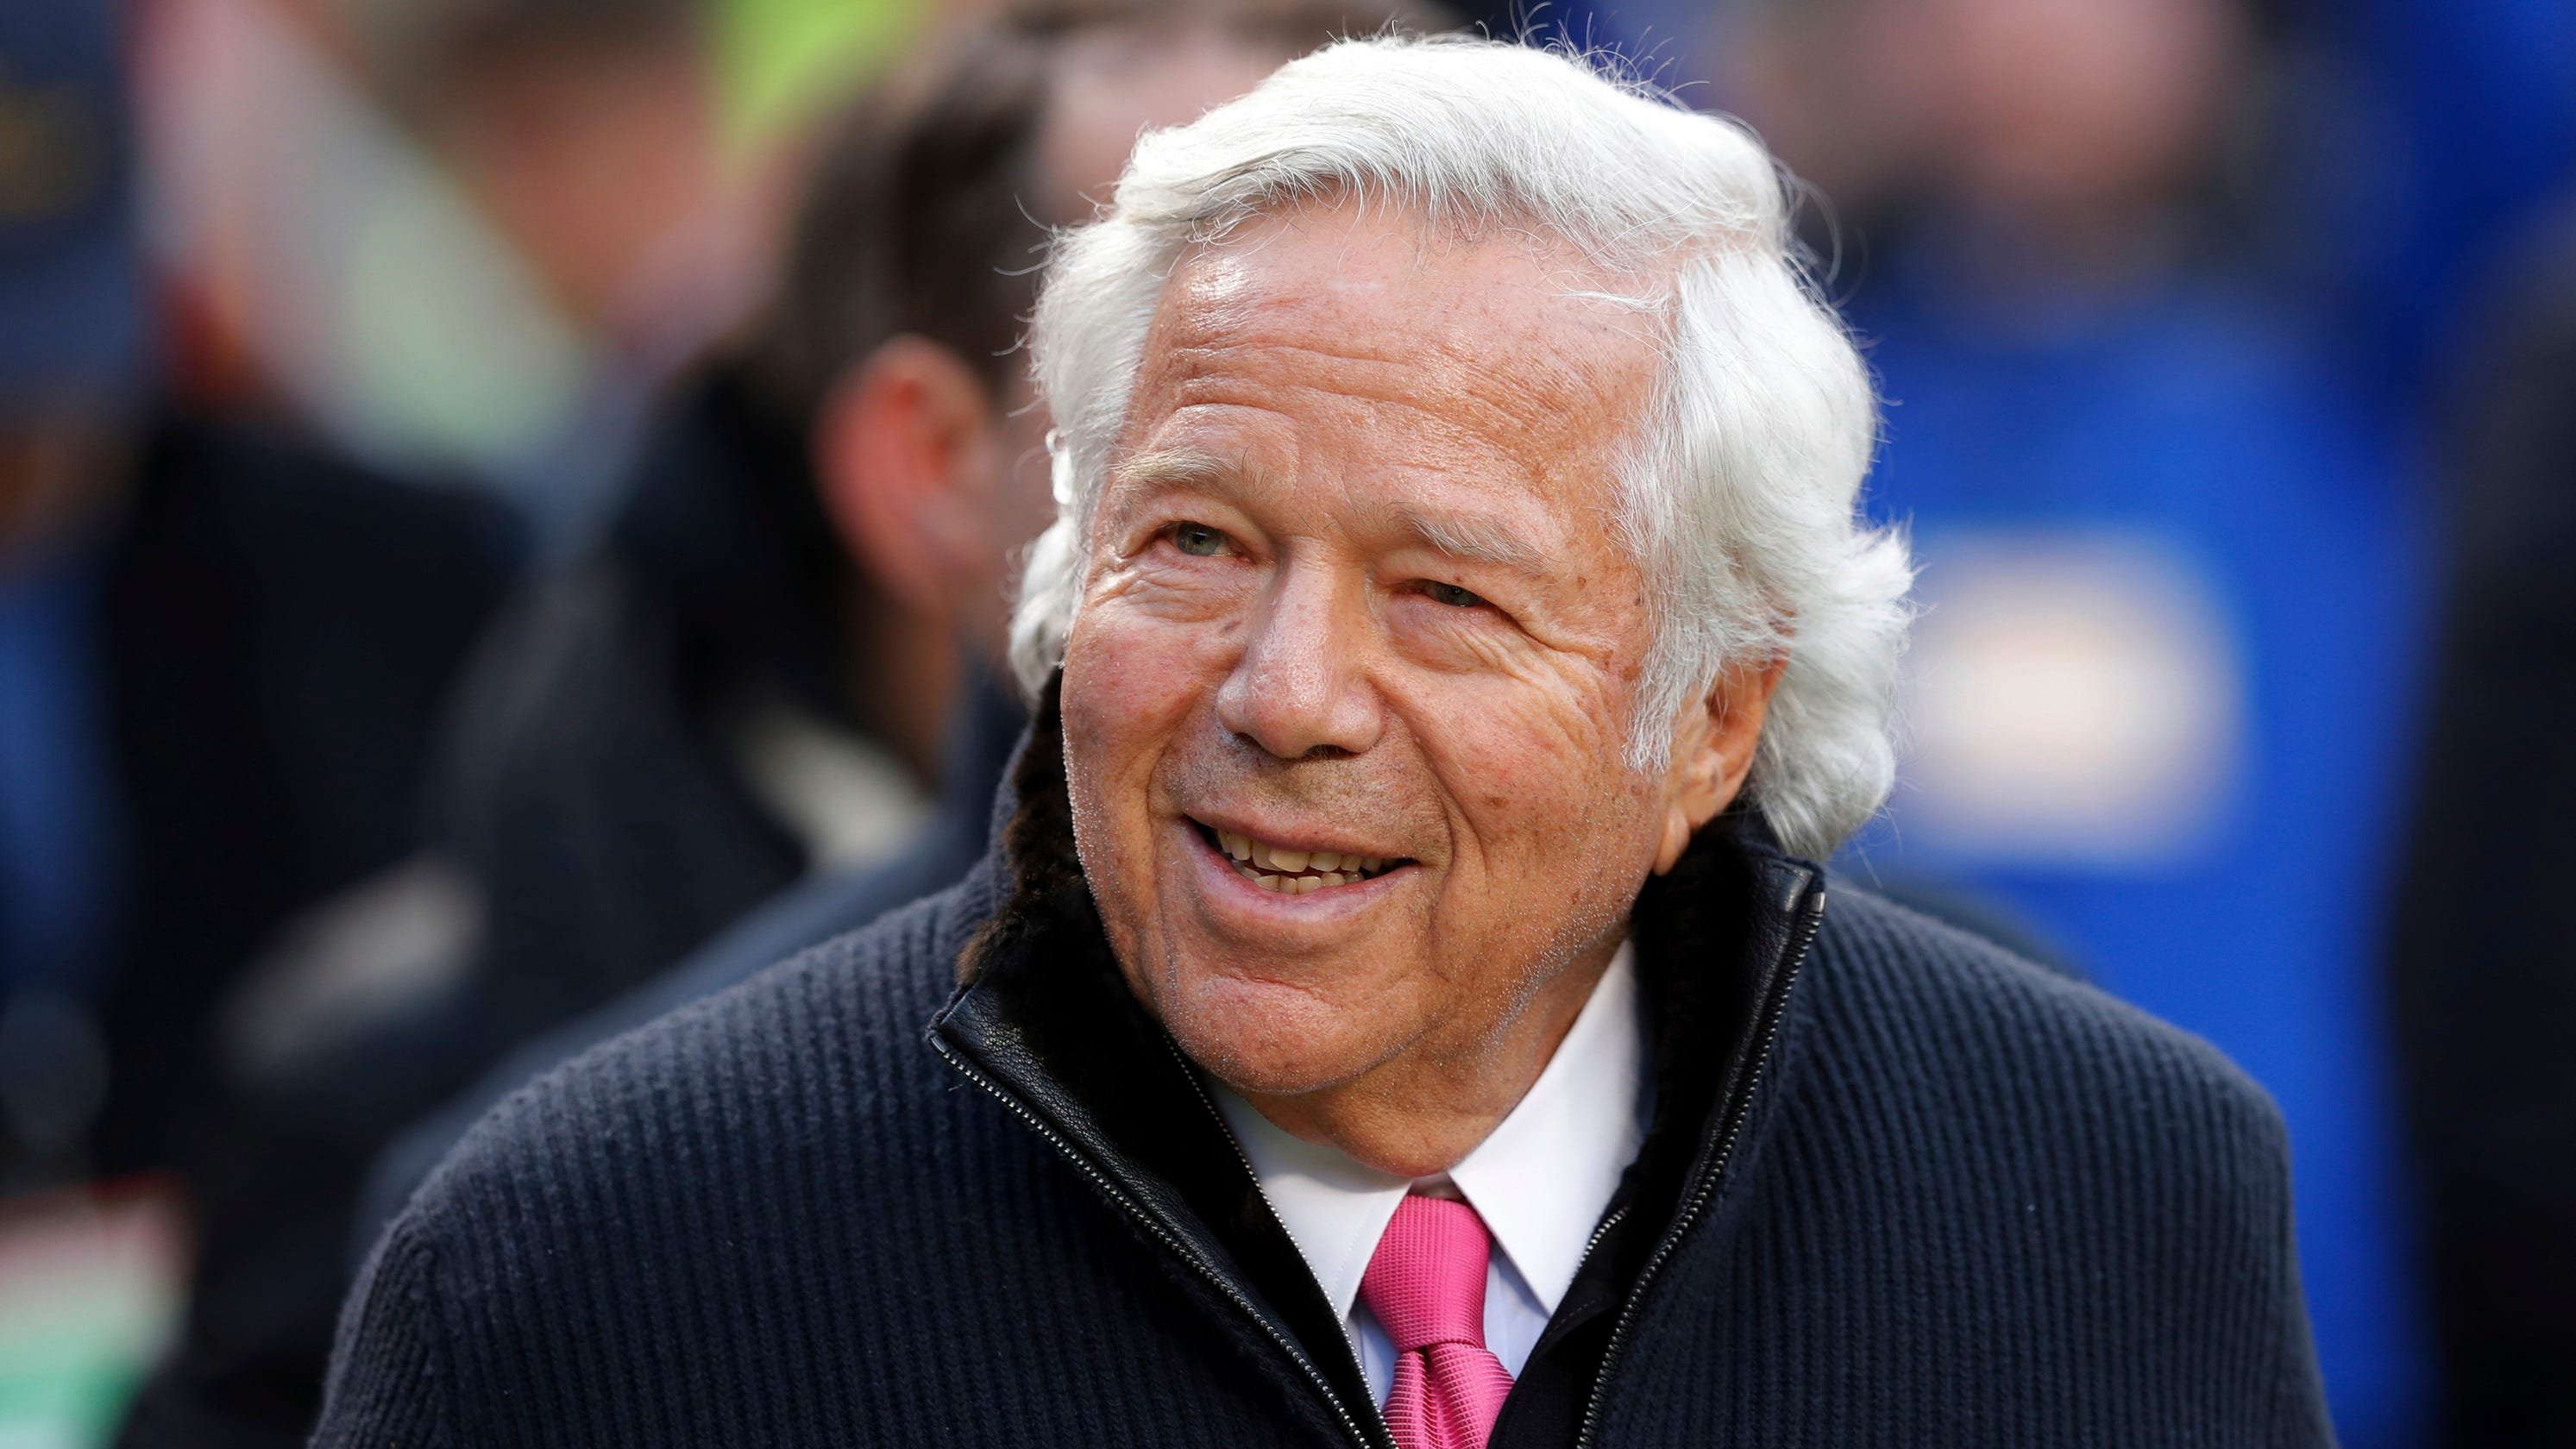 pats owner shares - HD1280×898